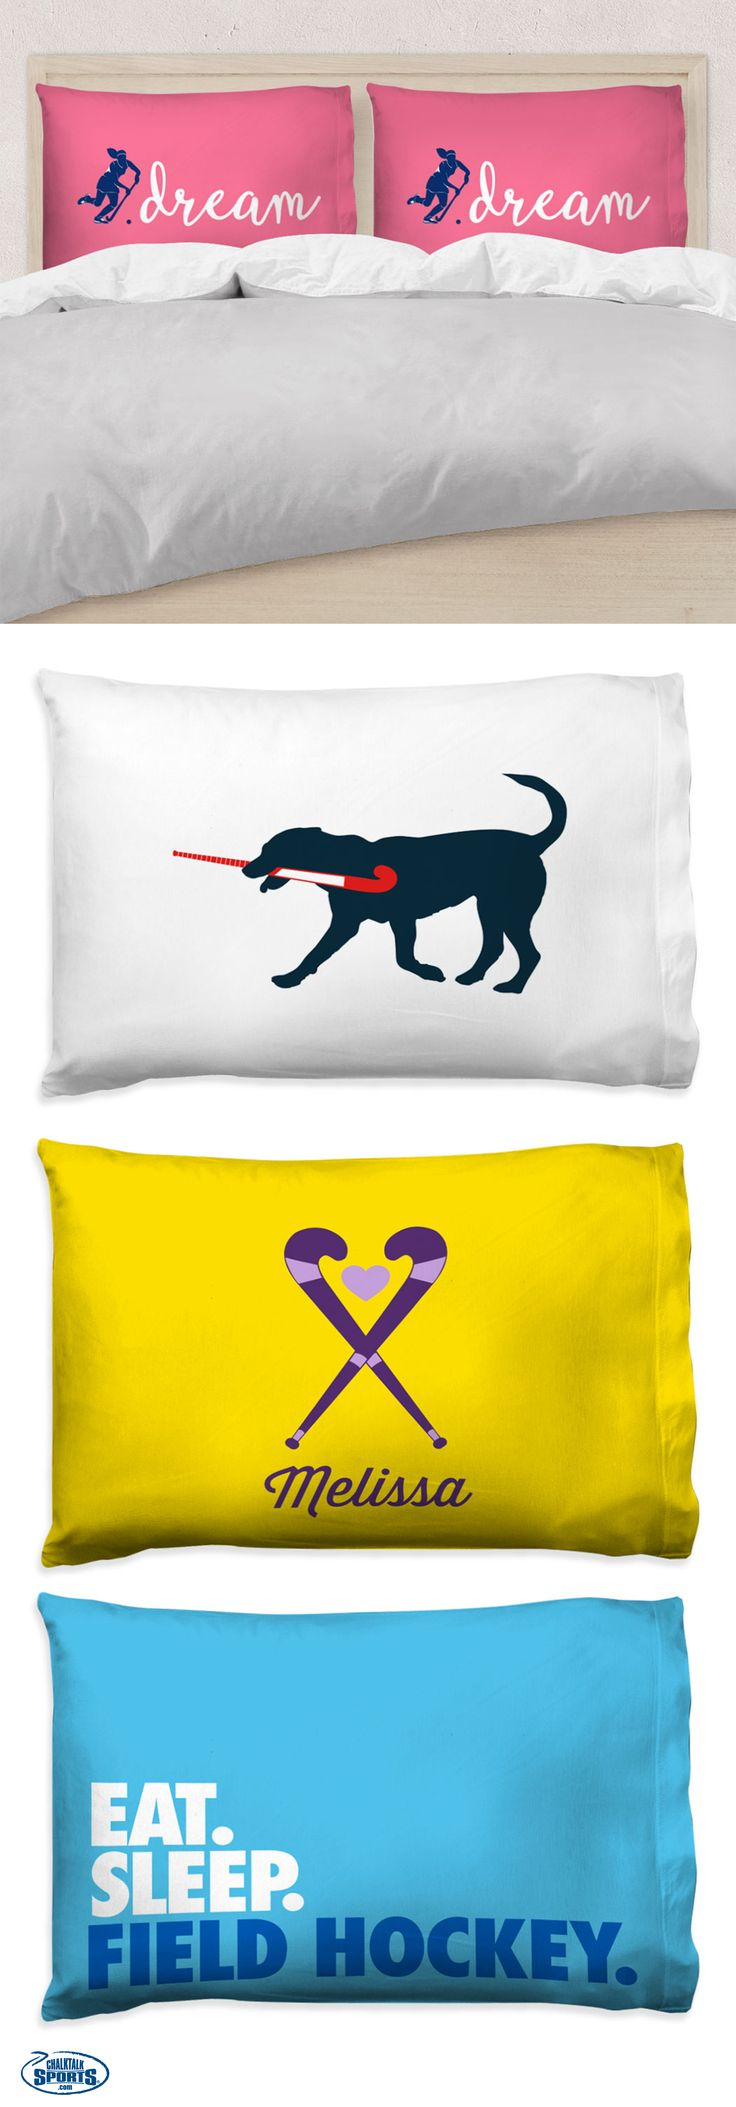 Custom and personalized pillow cases for your field hockey player! They make a great gift and will add a touch of field hockey spirit to any room!